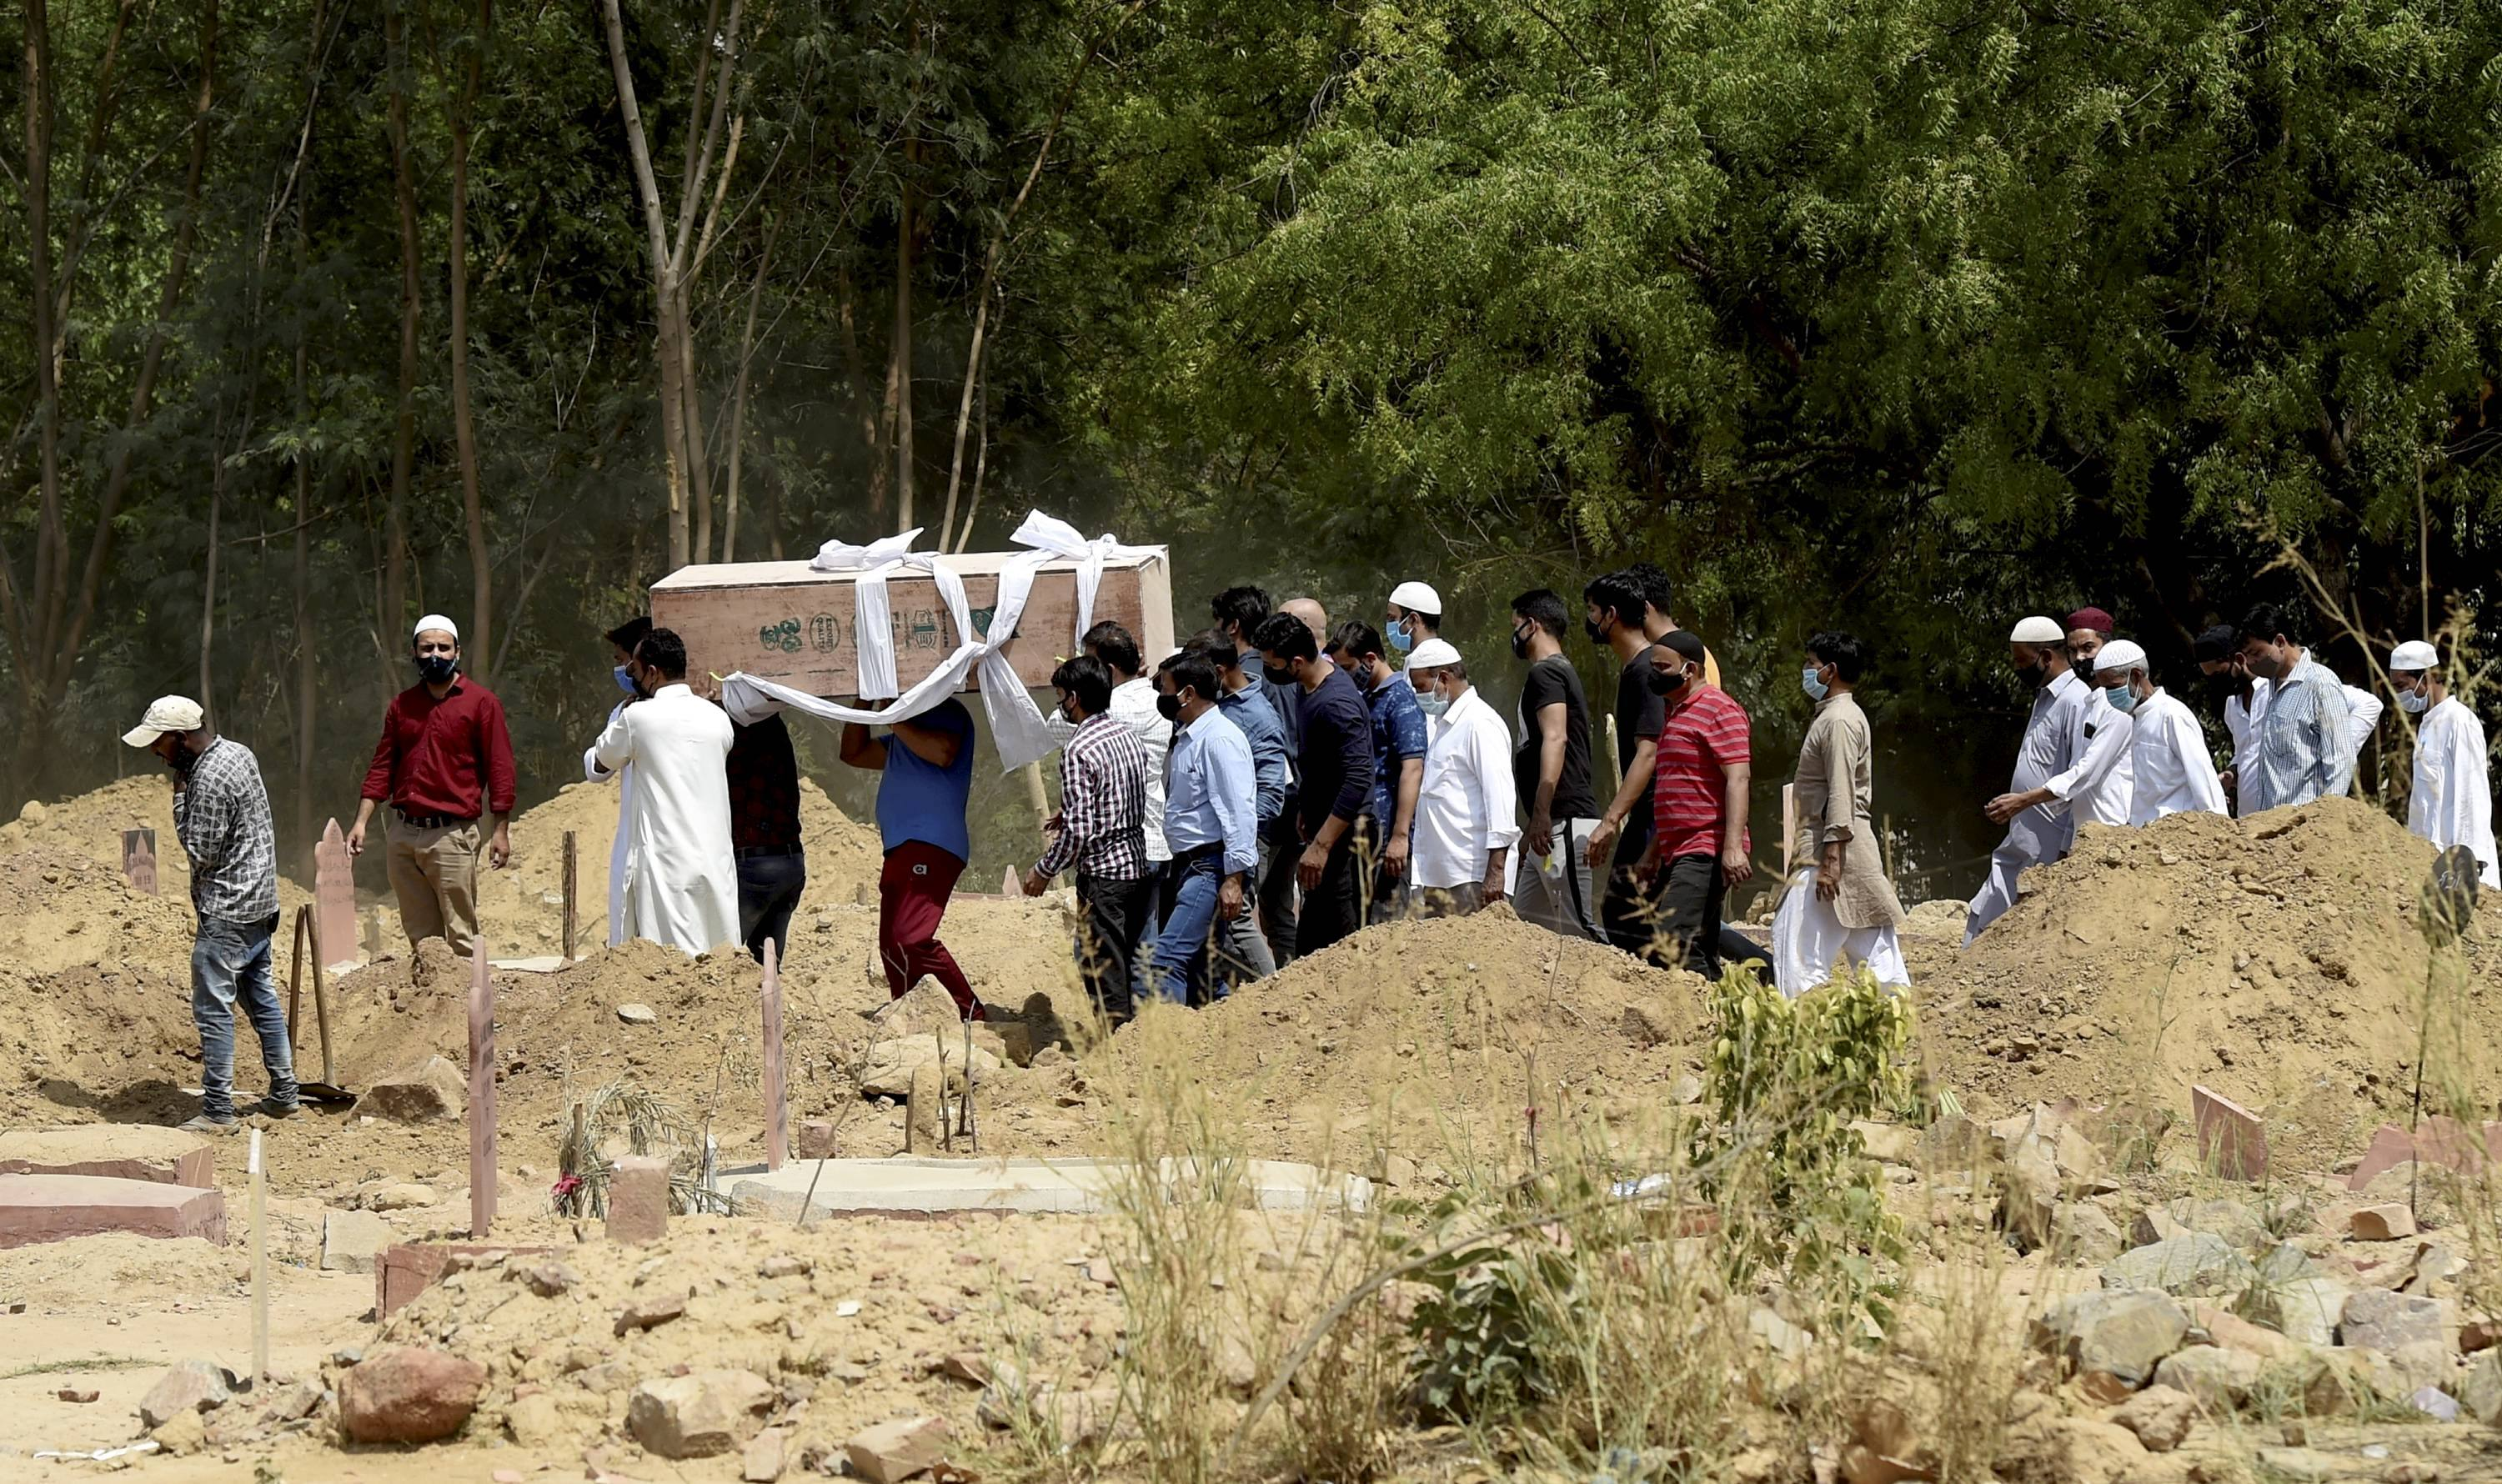 New Delhi: Family members and relatives perform burial of a person who succumbed to COVID-19, at a graveyard in New Delhi, Tuesday, April 13, 2021. (PTI Photo/Manvender Vashist)(PTI04_13_2021_000148B)